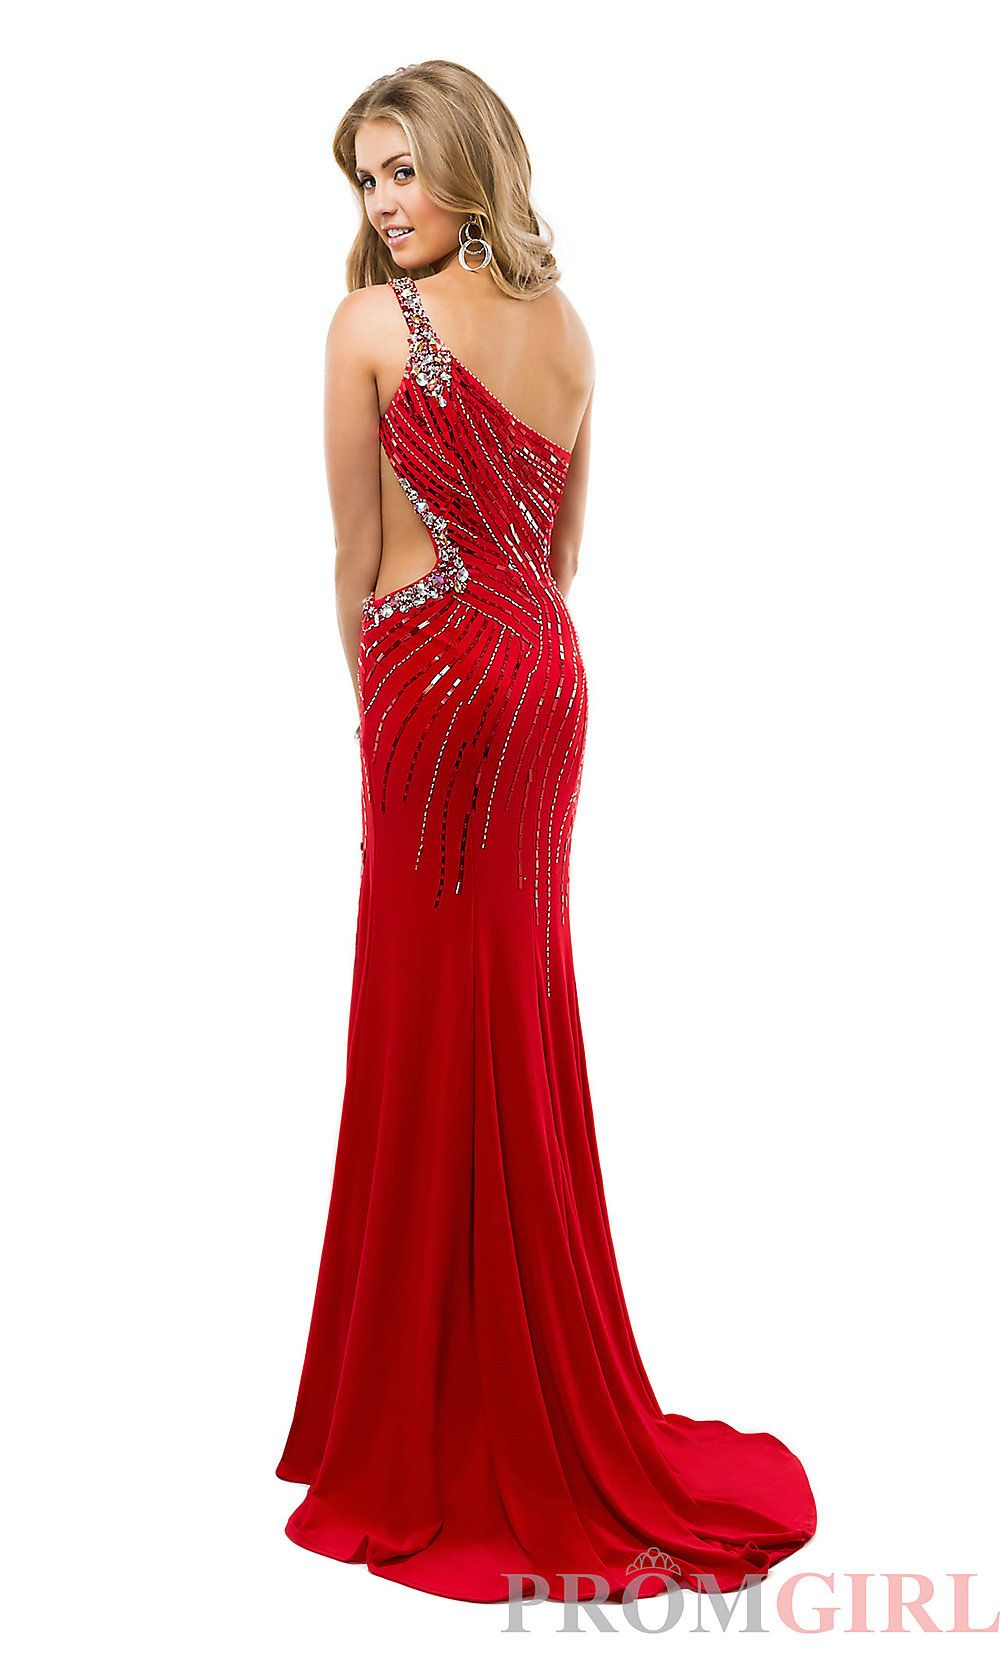 d1b5885a183 Prom Dresses, Celebrity Dresses, Sexy Evening Gowns - PromGirl: Long One  Shoulder Dress with Side Cut Out